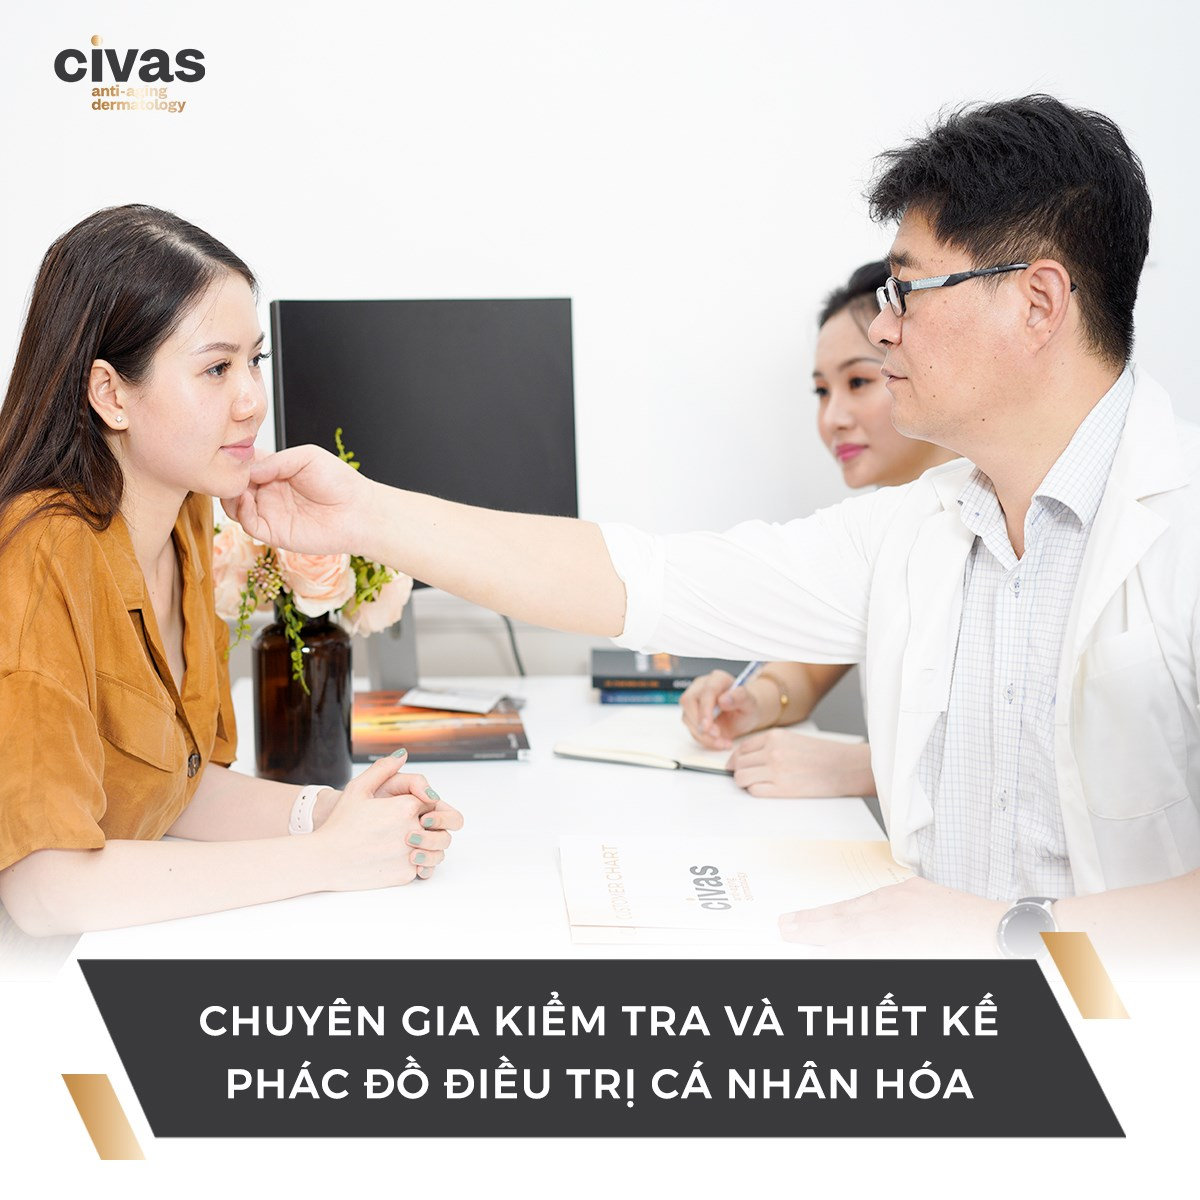 CIVAS ANTI-AGING CENTER